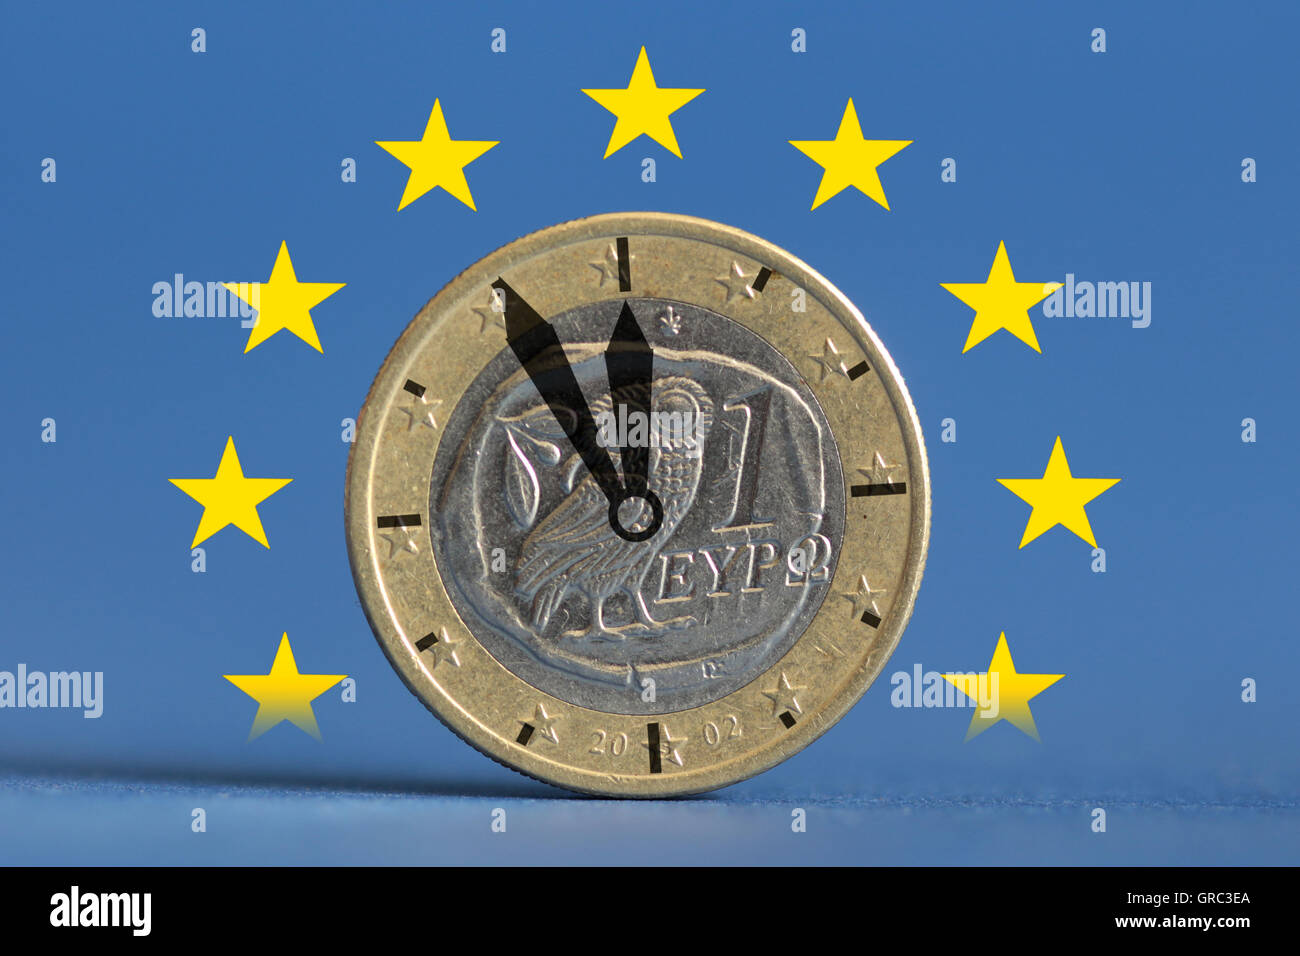 High Noon For Greece Clock With Greek Euro Coin And Flag Of Eu - Stock Image